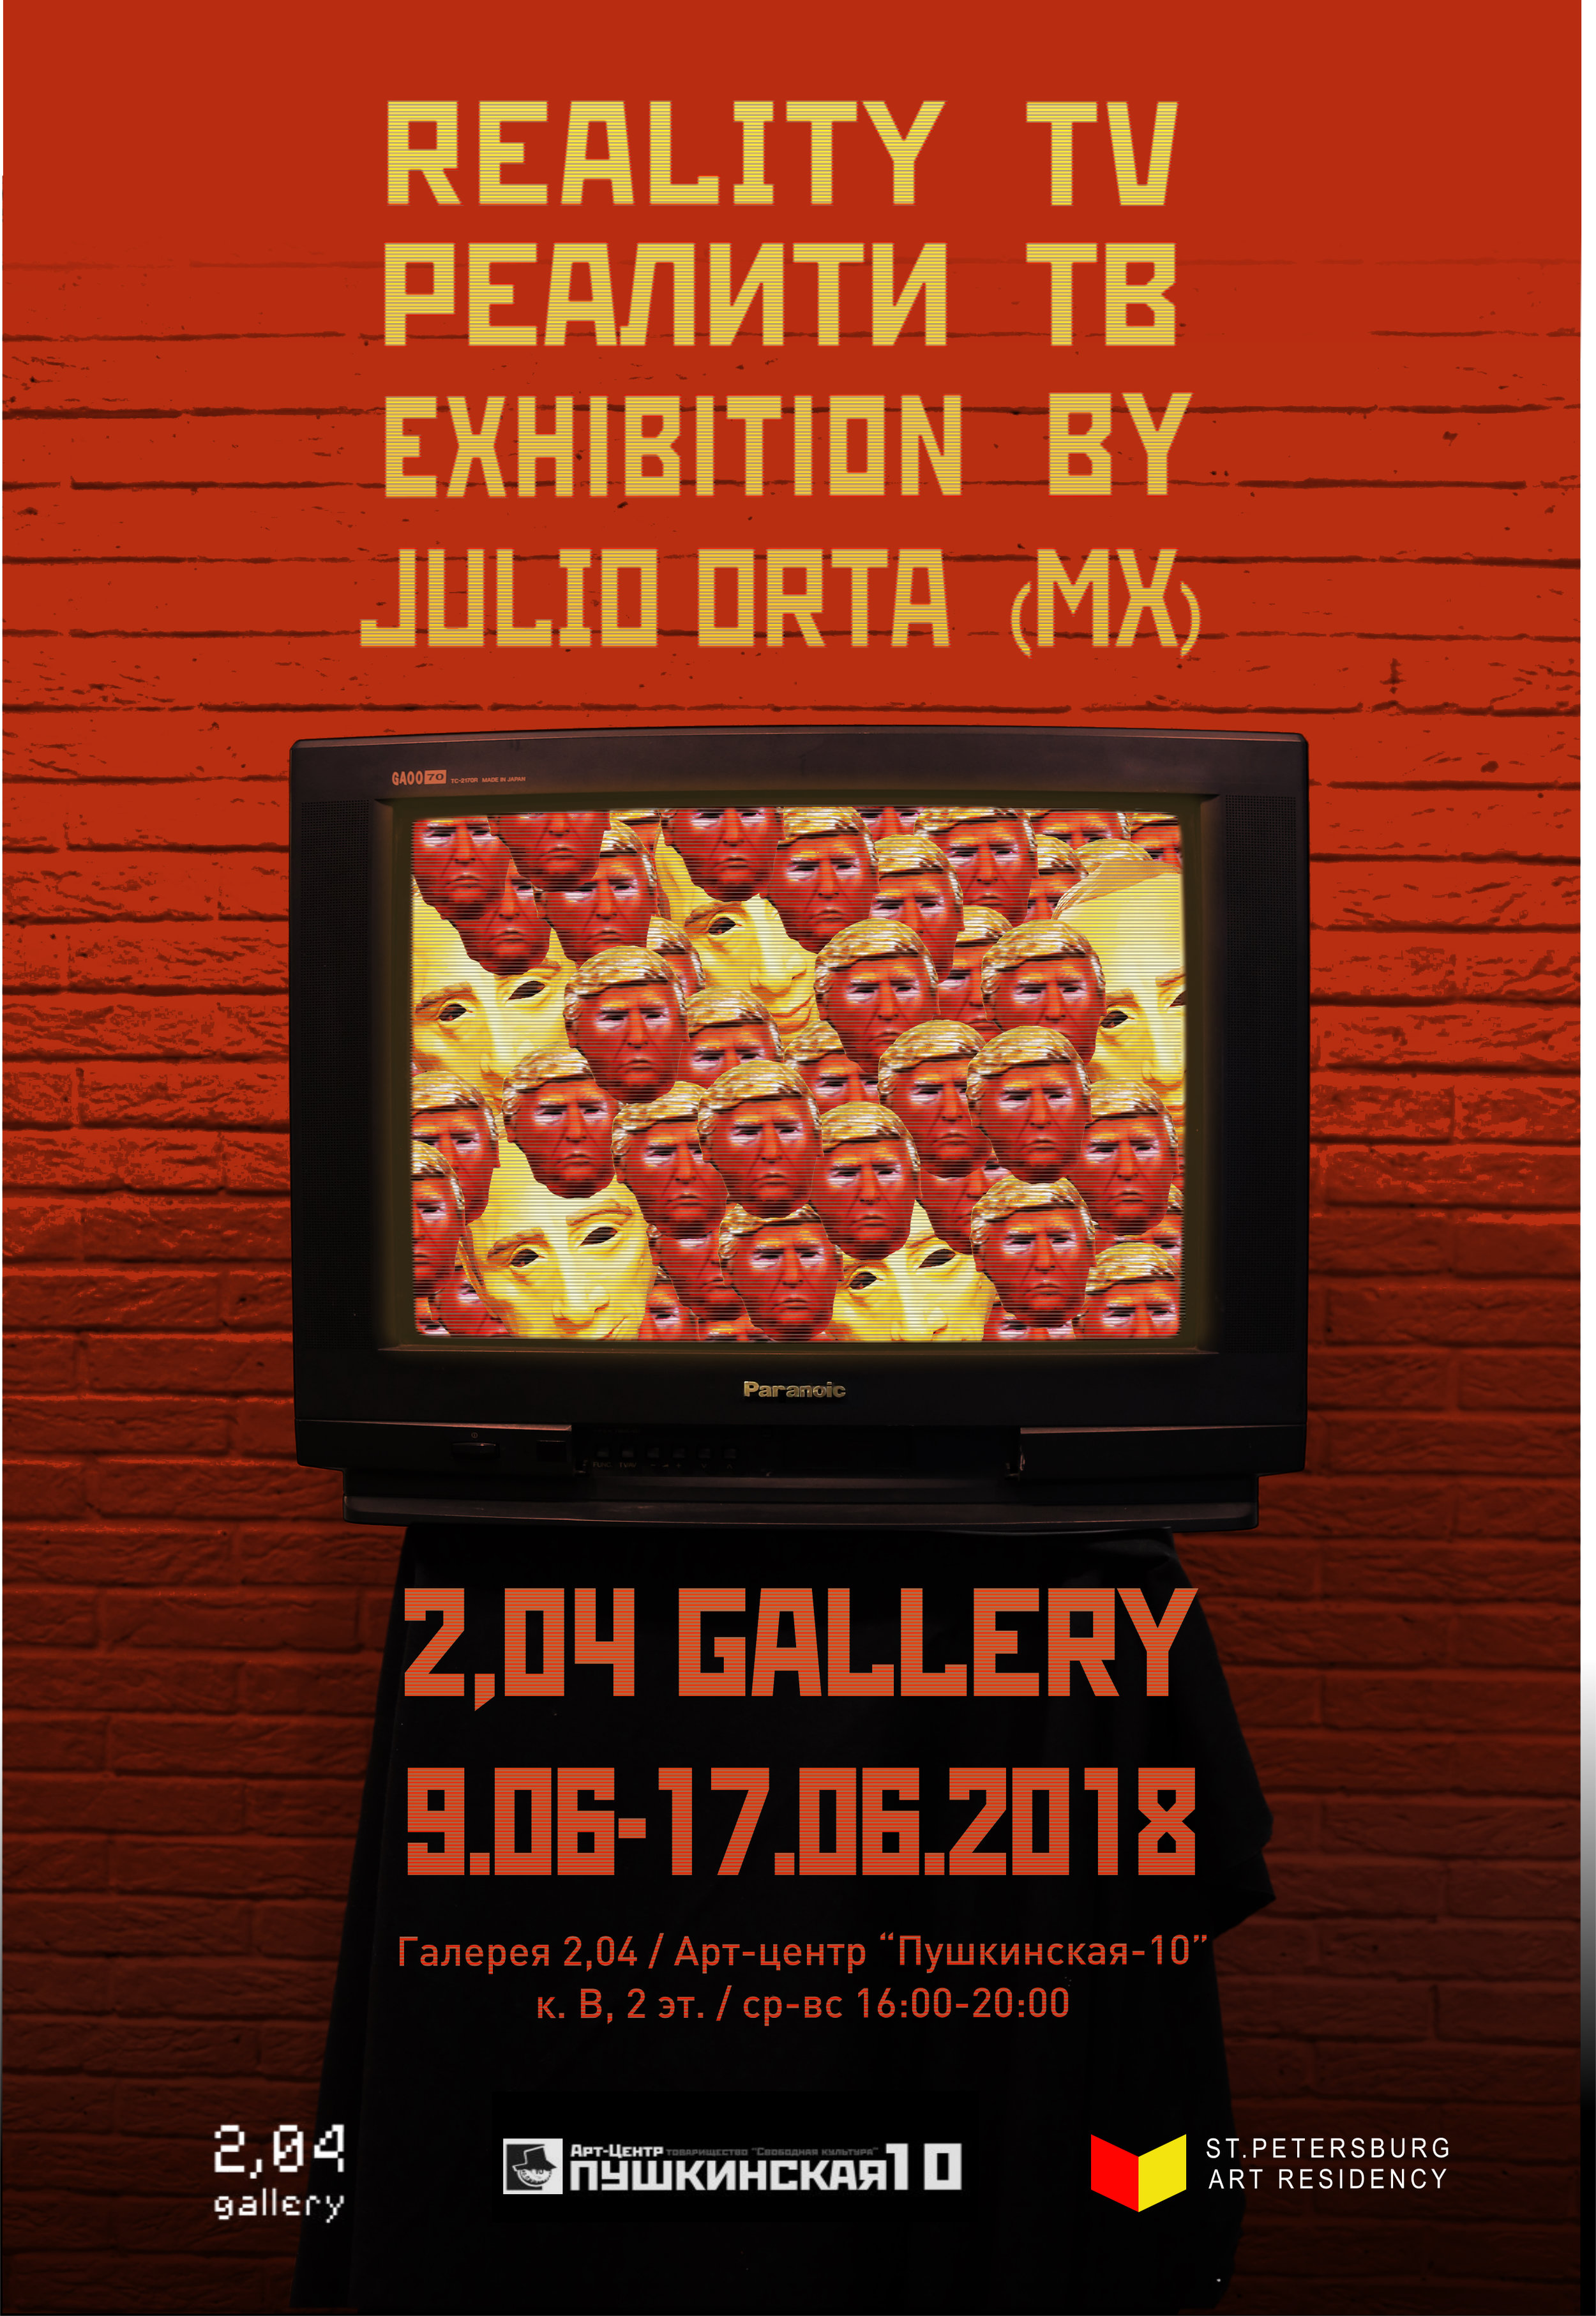 julio_orta_realitytv_poster